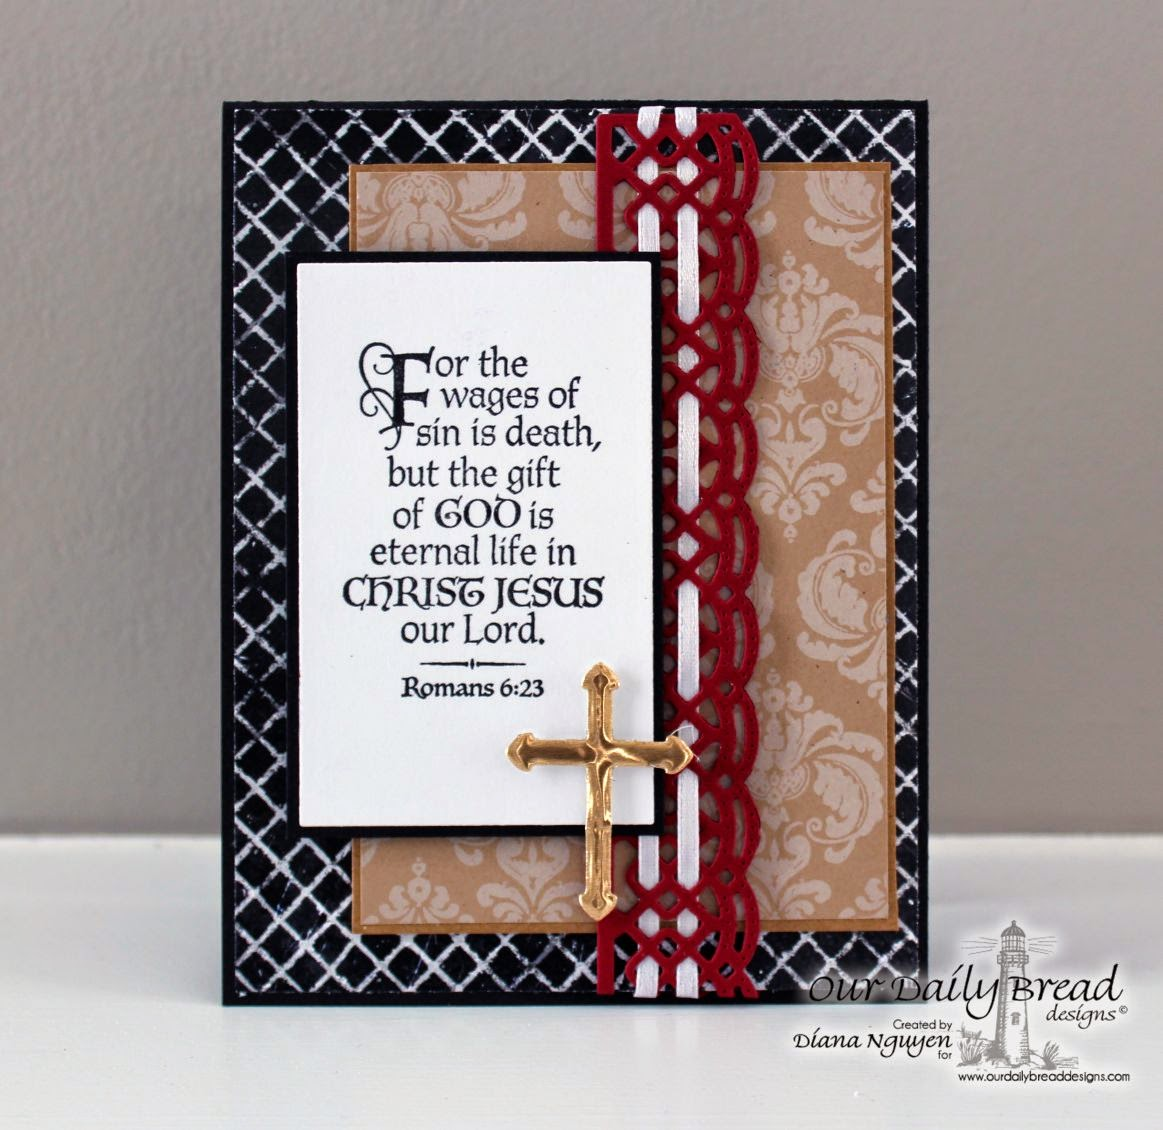 Diana Nguyen, Our daily Bread Designs, scripture, card